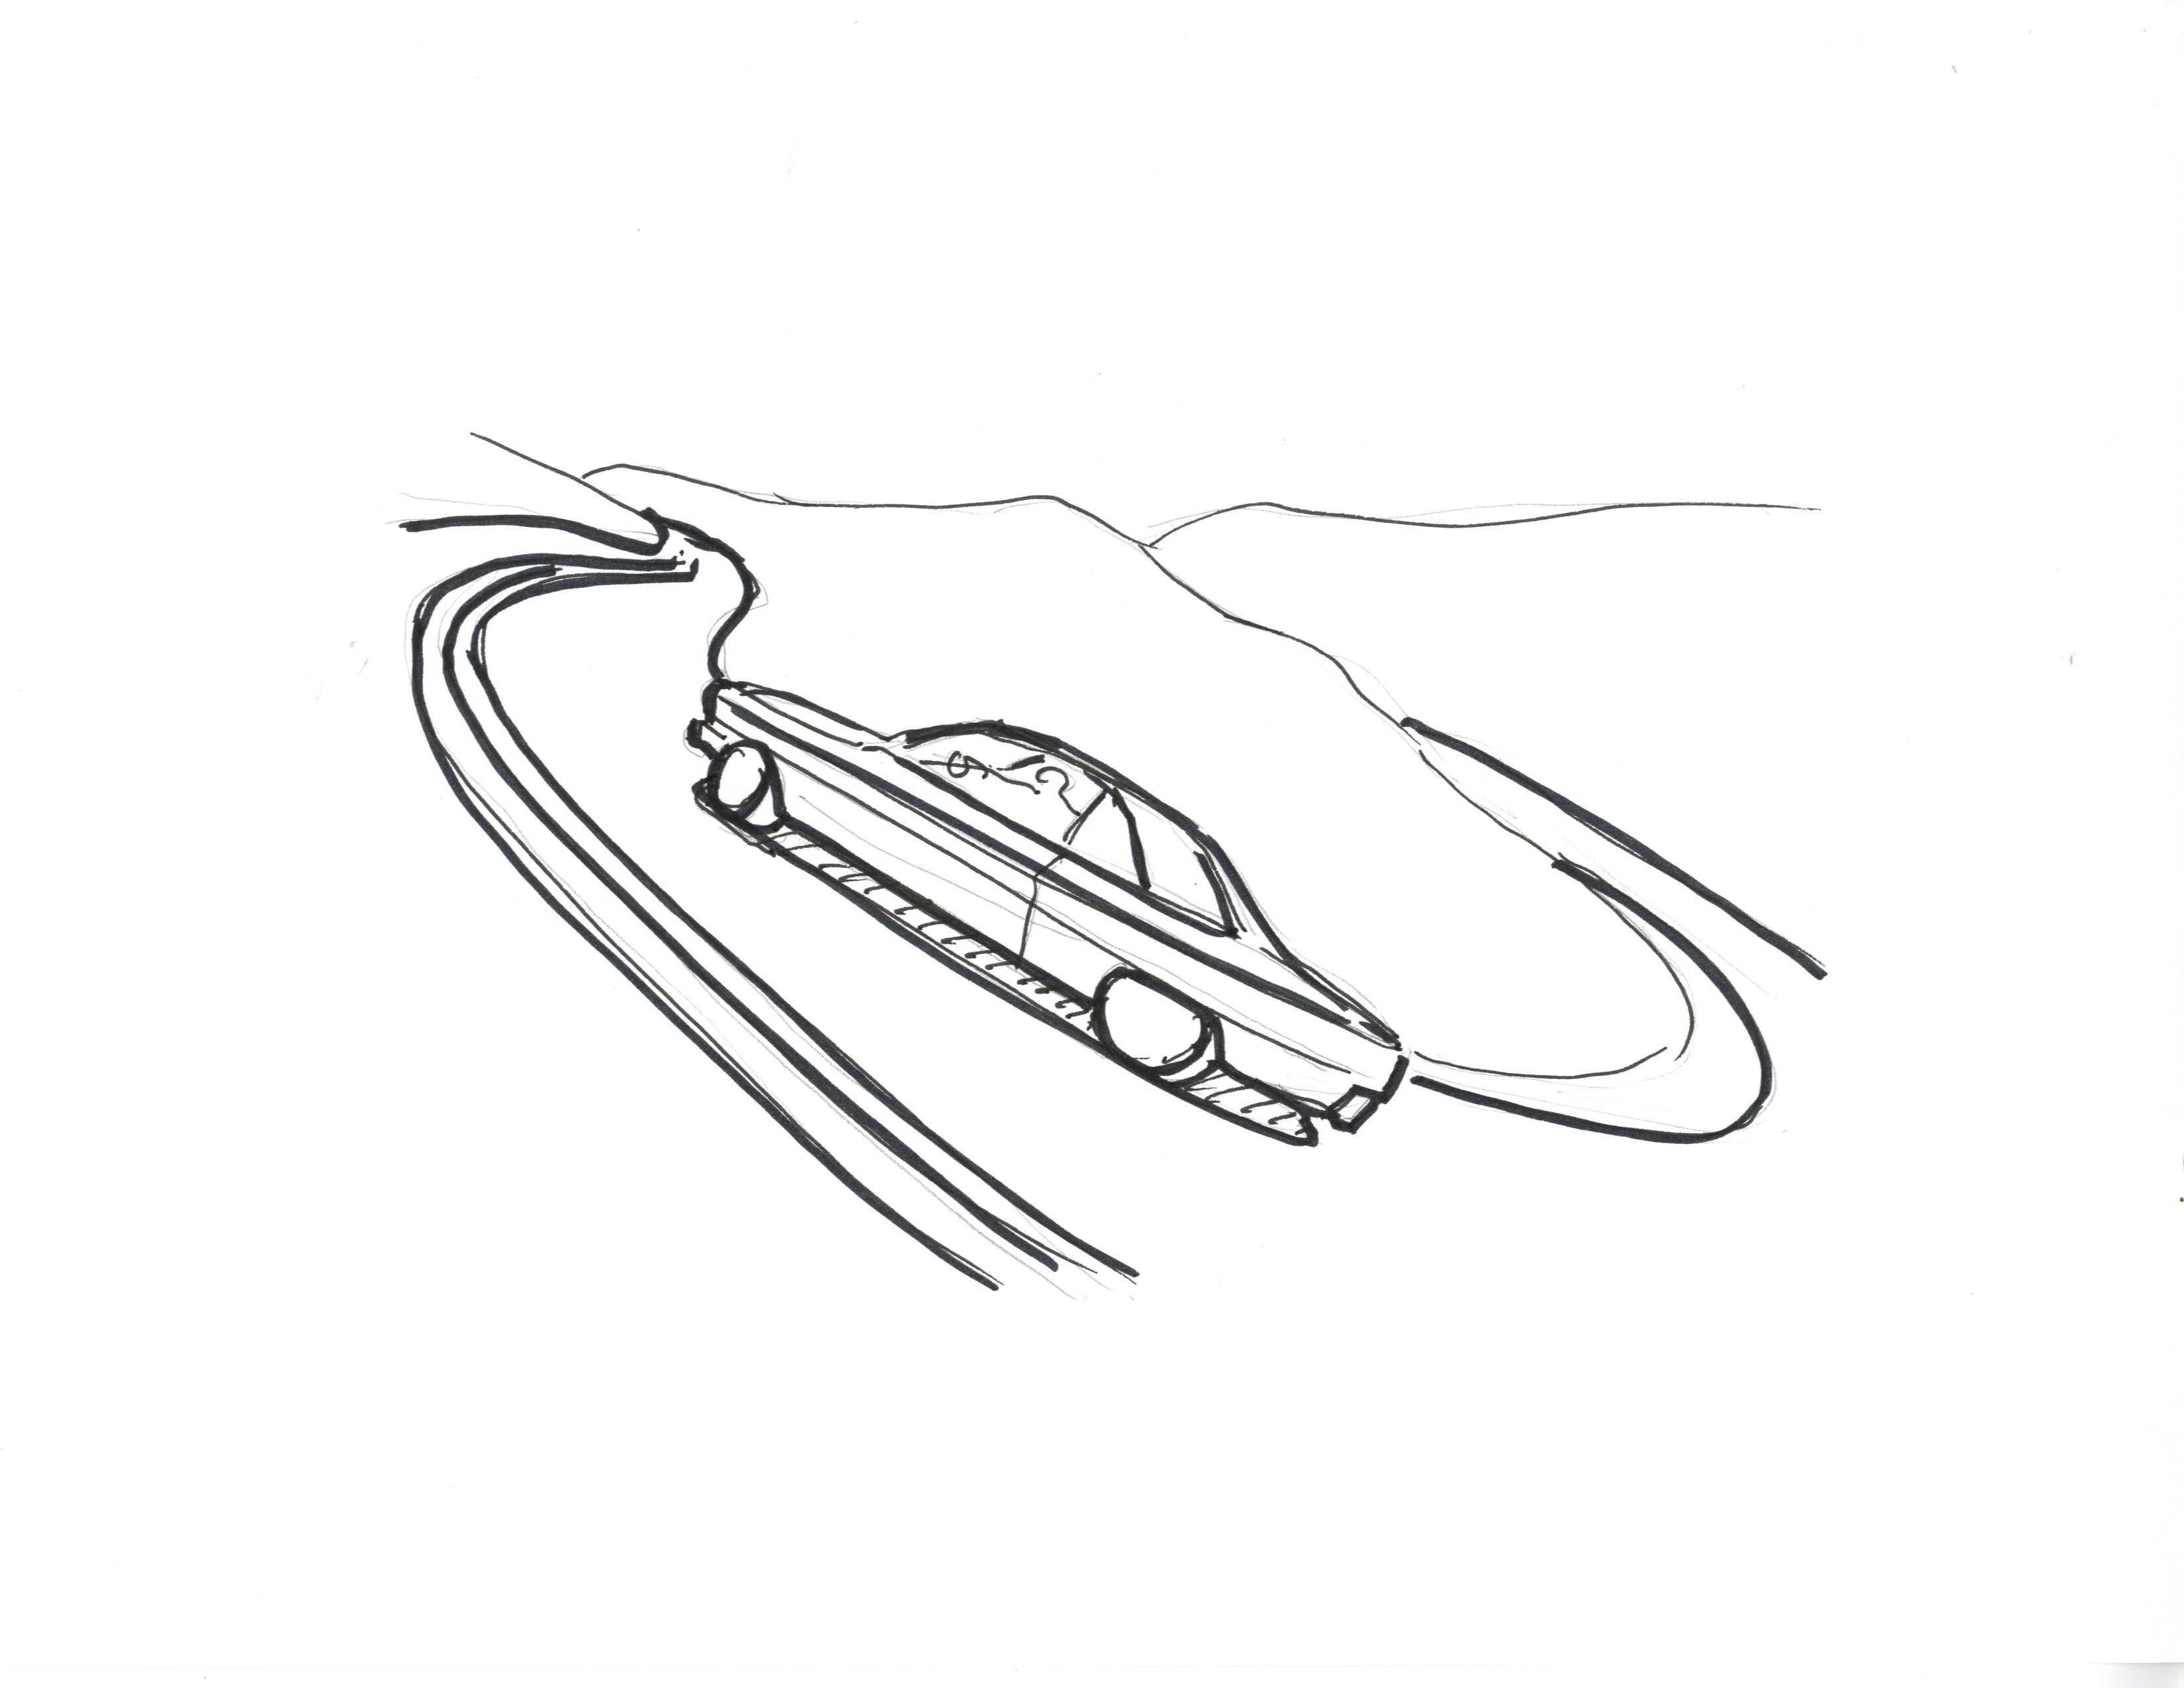 Hairpin corner a car going through a hairpin corner in a high speed is called sharp turn